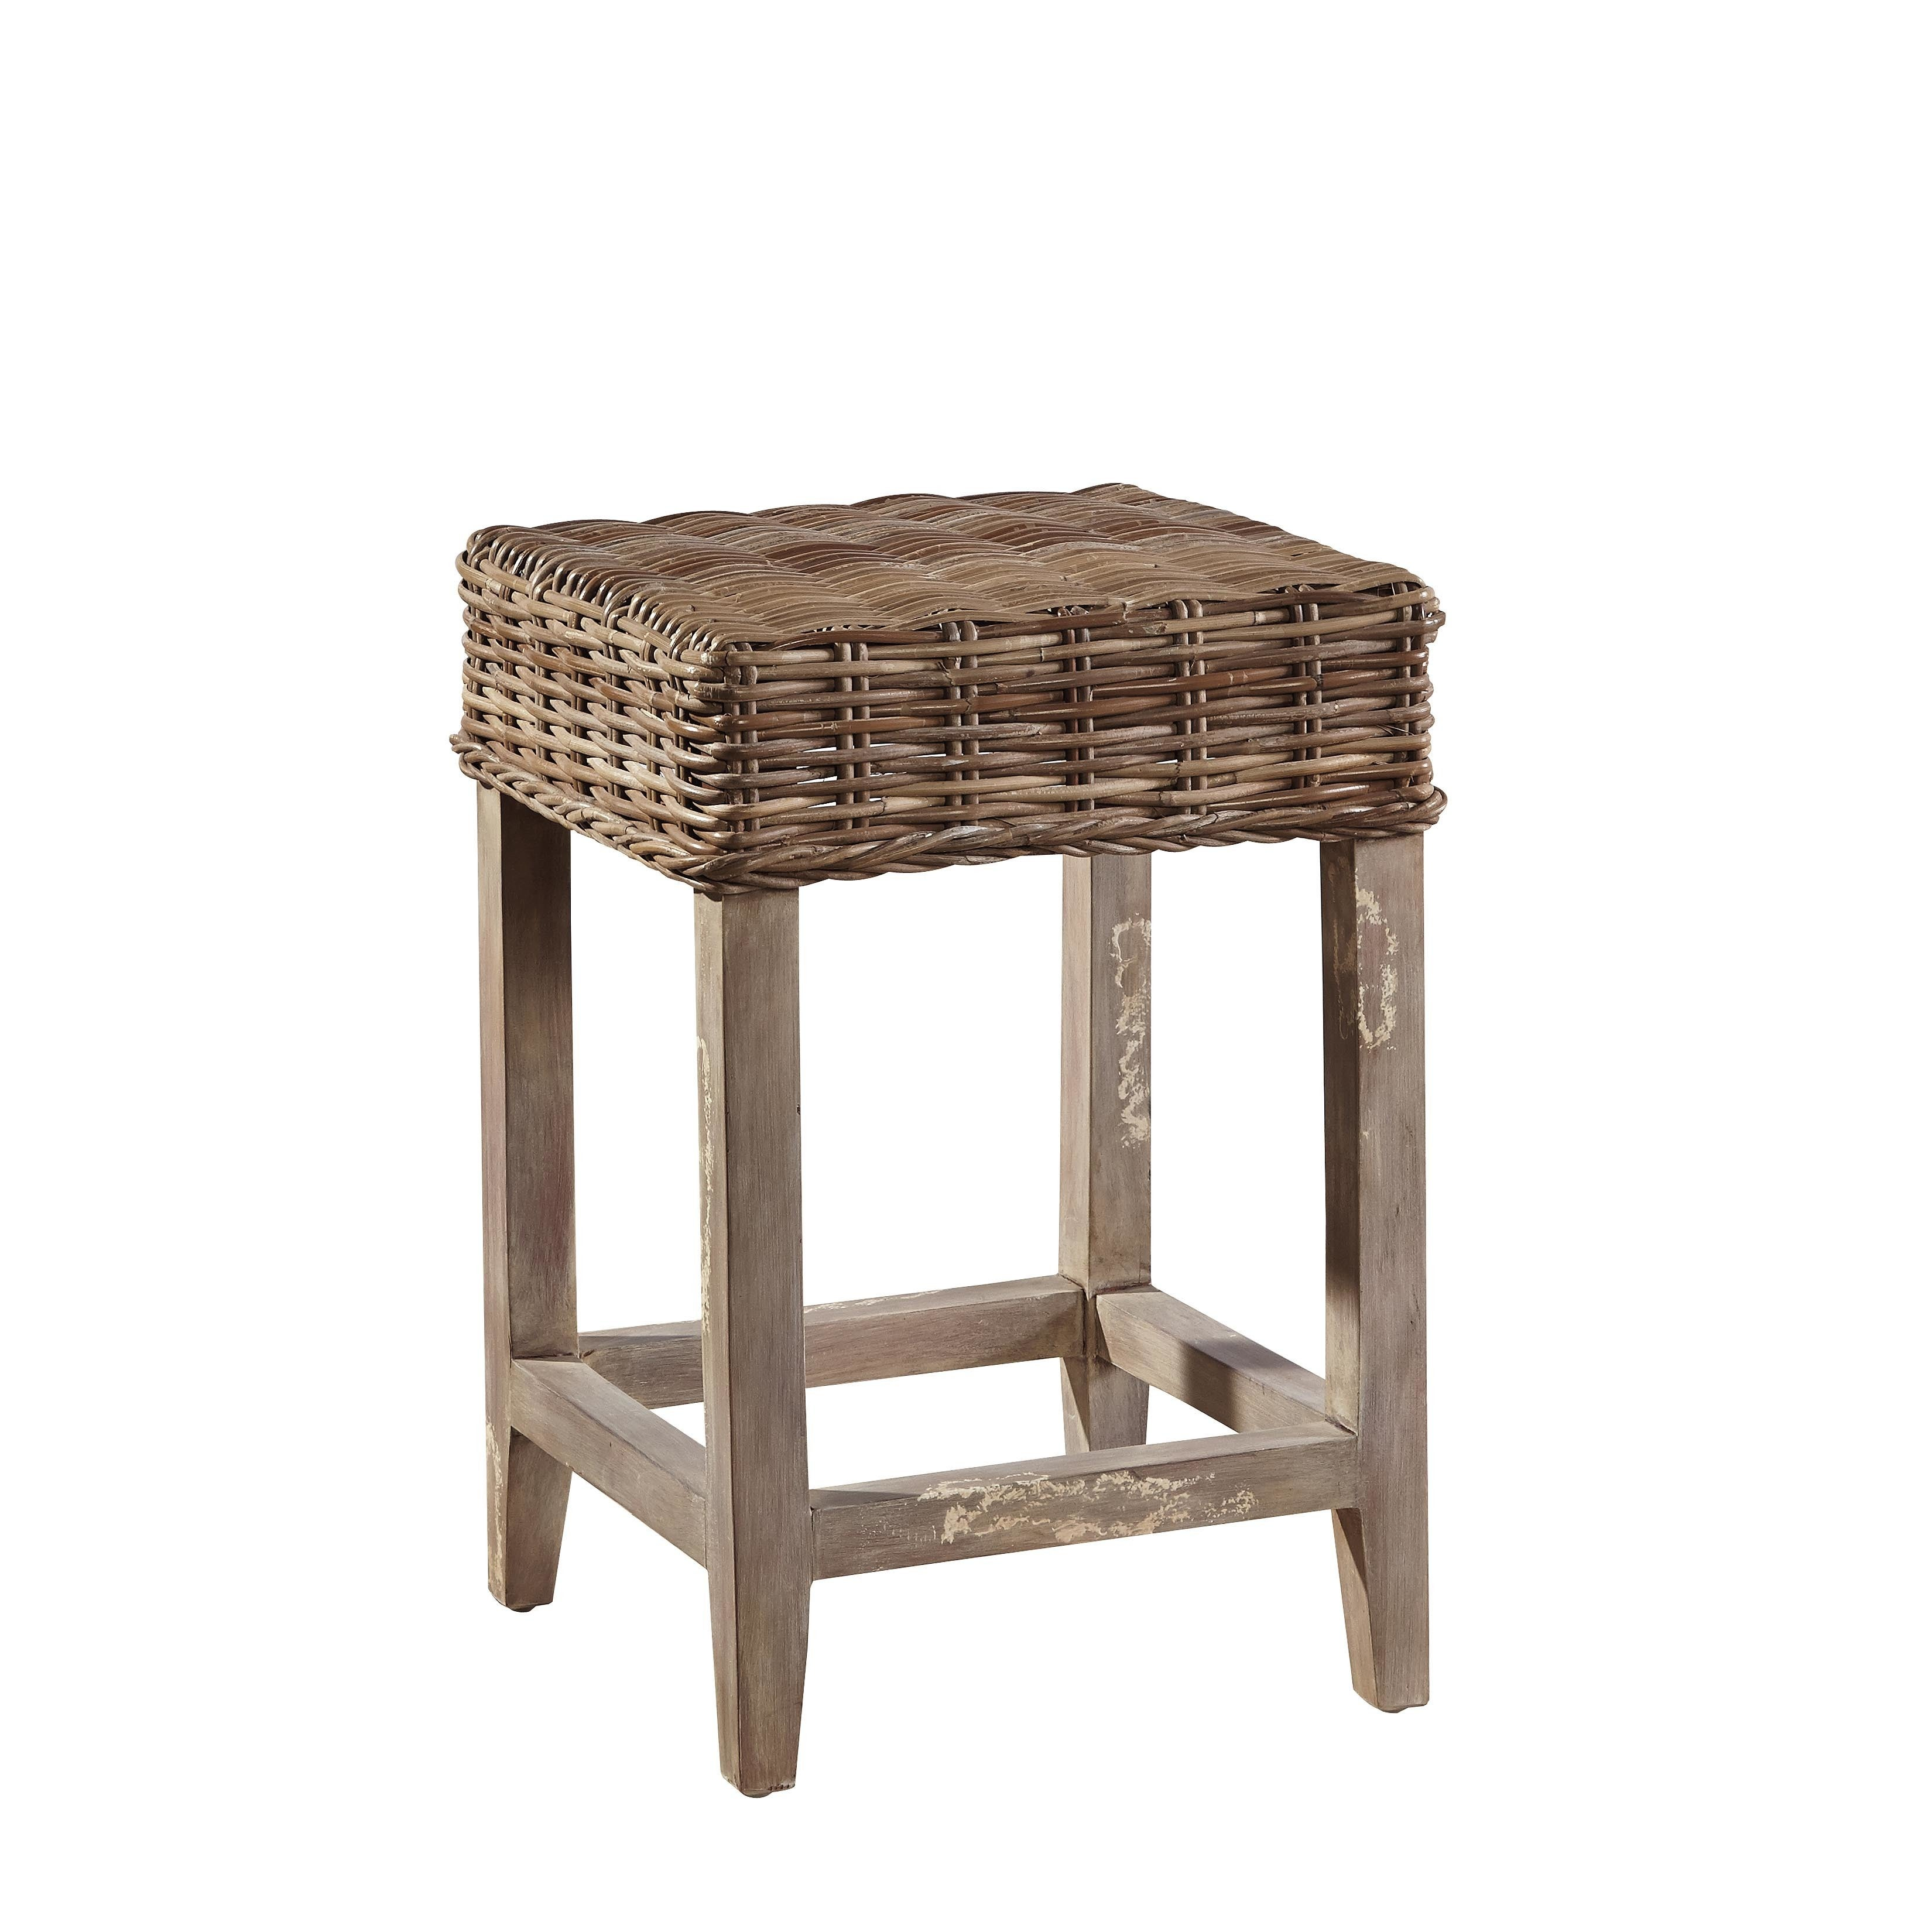 top back also for elegantly wicker counter backless stools height stool rattan low swivel chip all bar ganecovillage designed wooden images amazing blue armrest with furniture chair